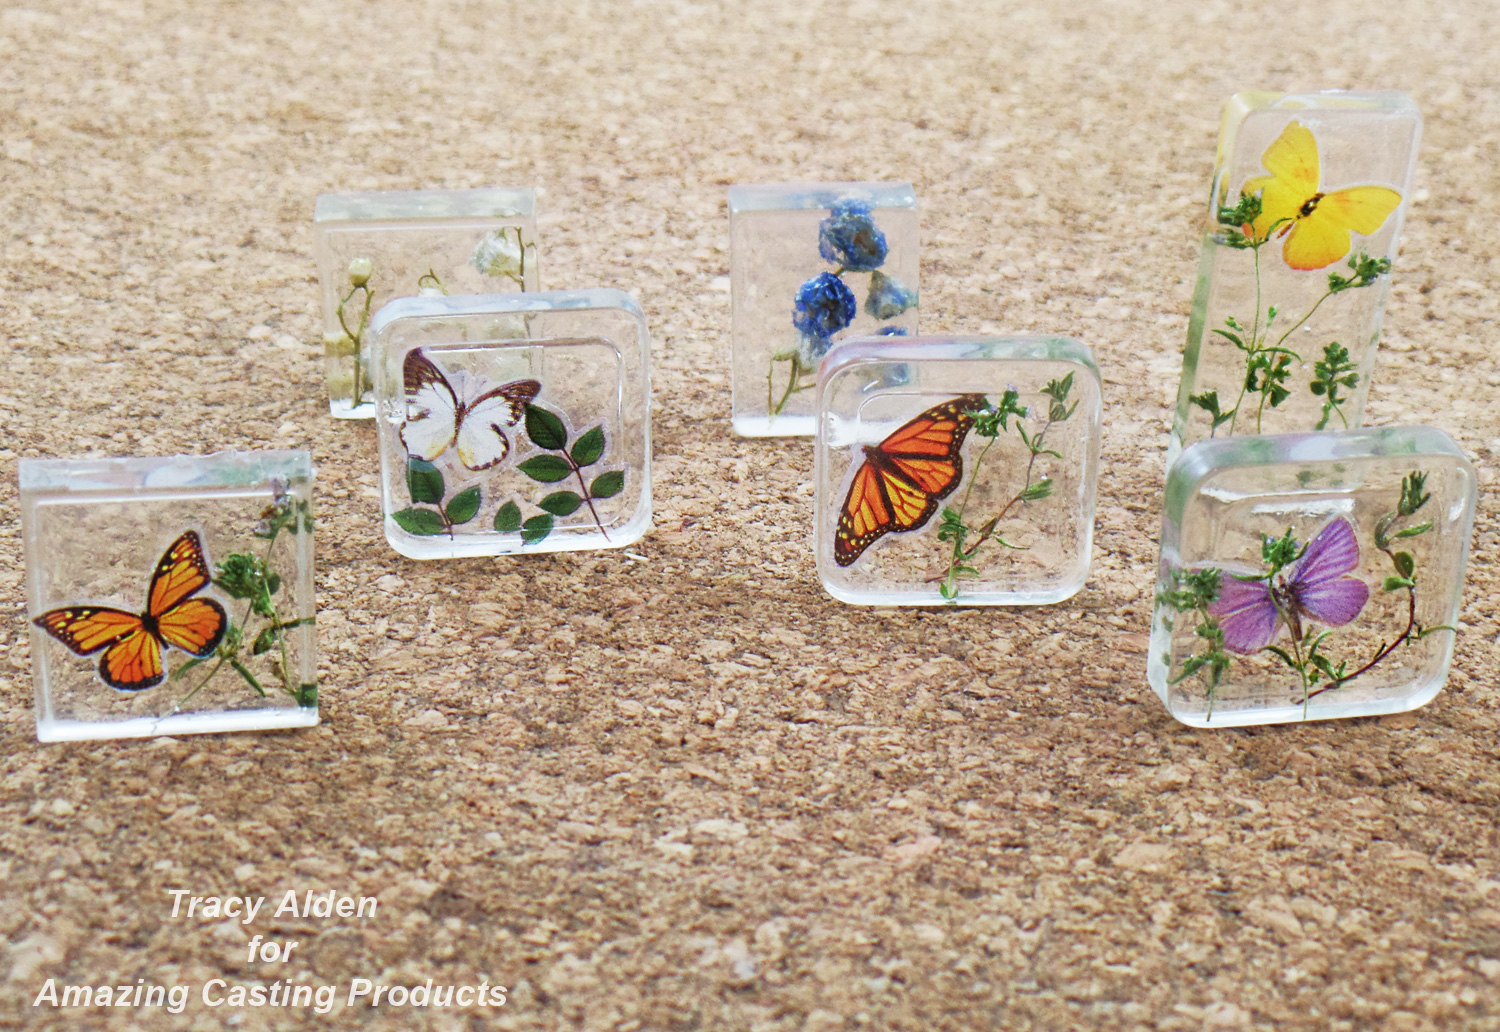 Amazing Casting Products: From #Cre8time Organization to Springtime